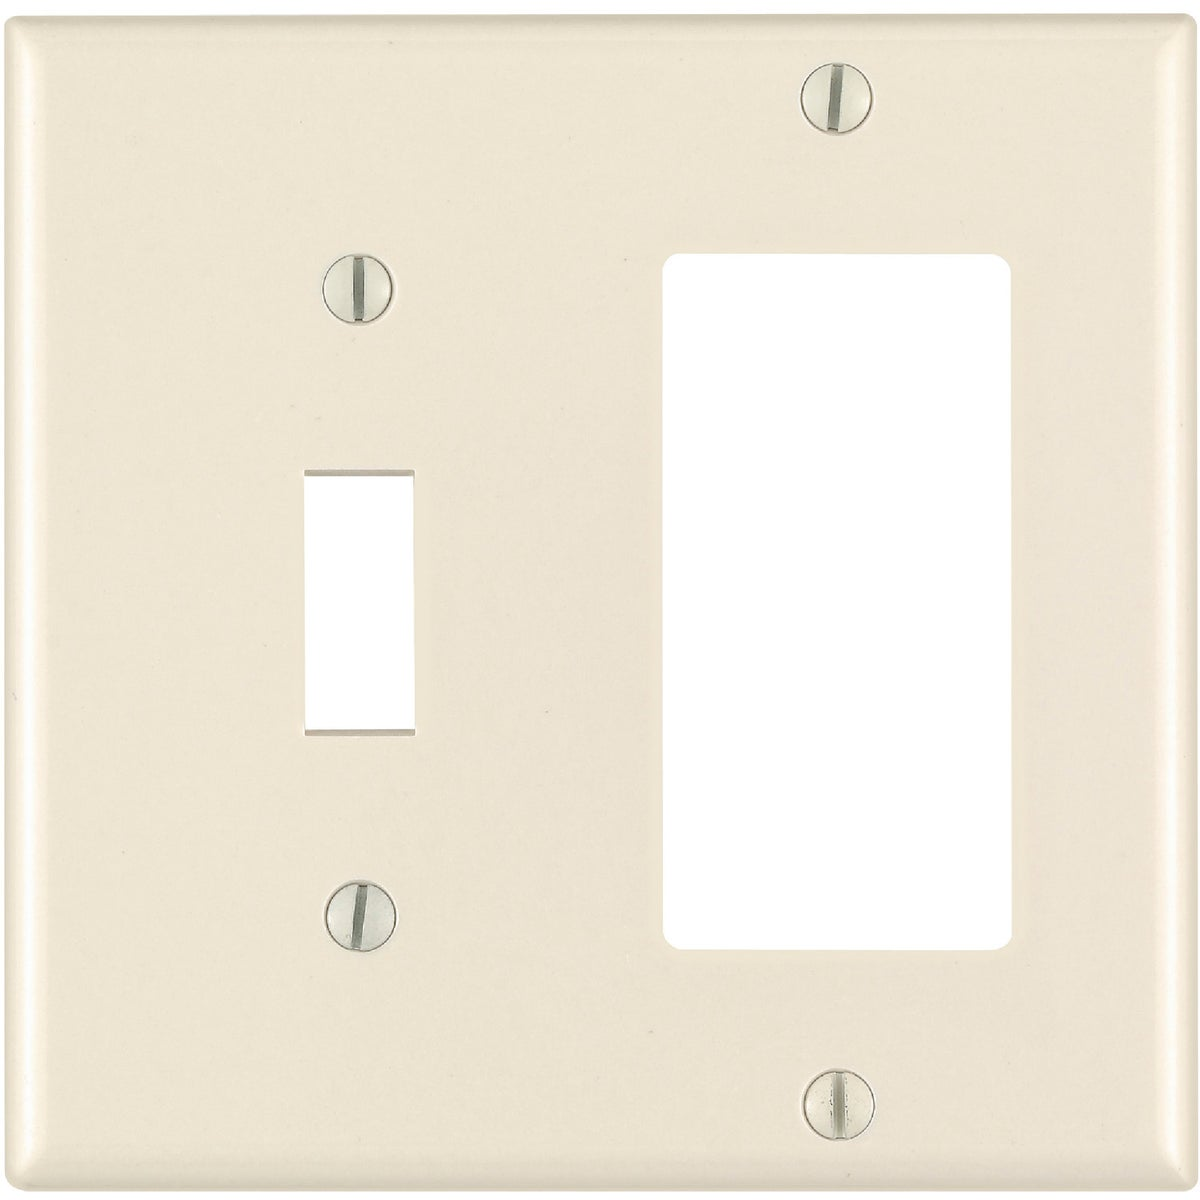 LT ALM GFI/TGL WALLPLATE - 007-80405-T by Leviton Mfg Co